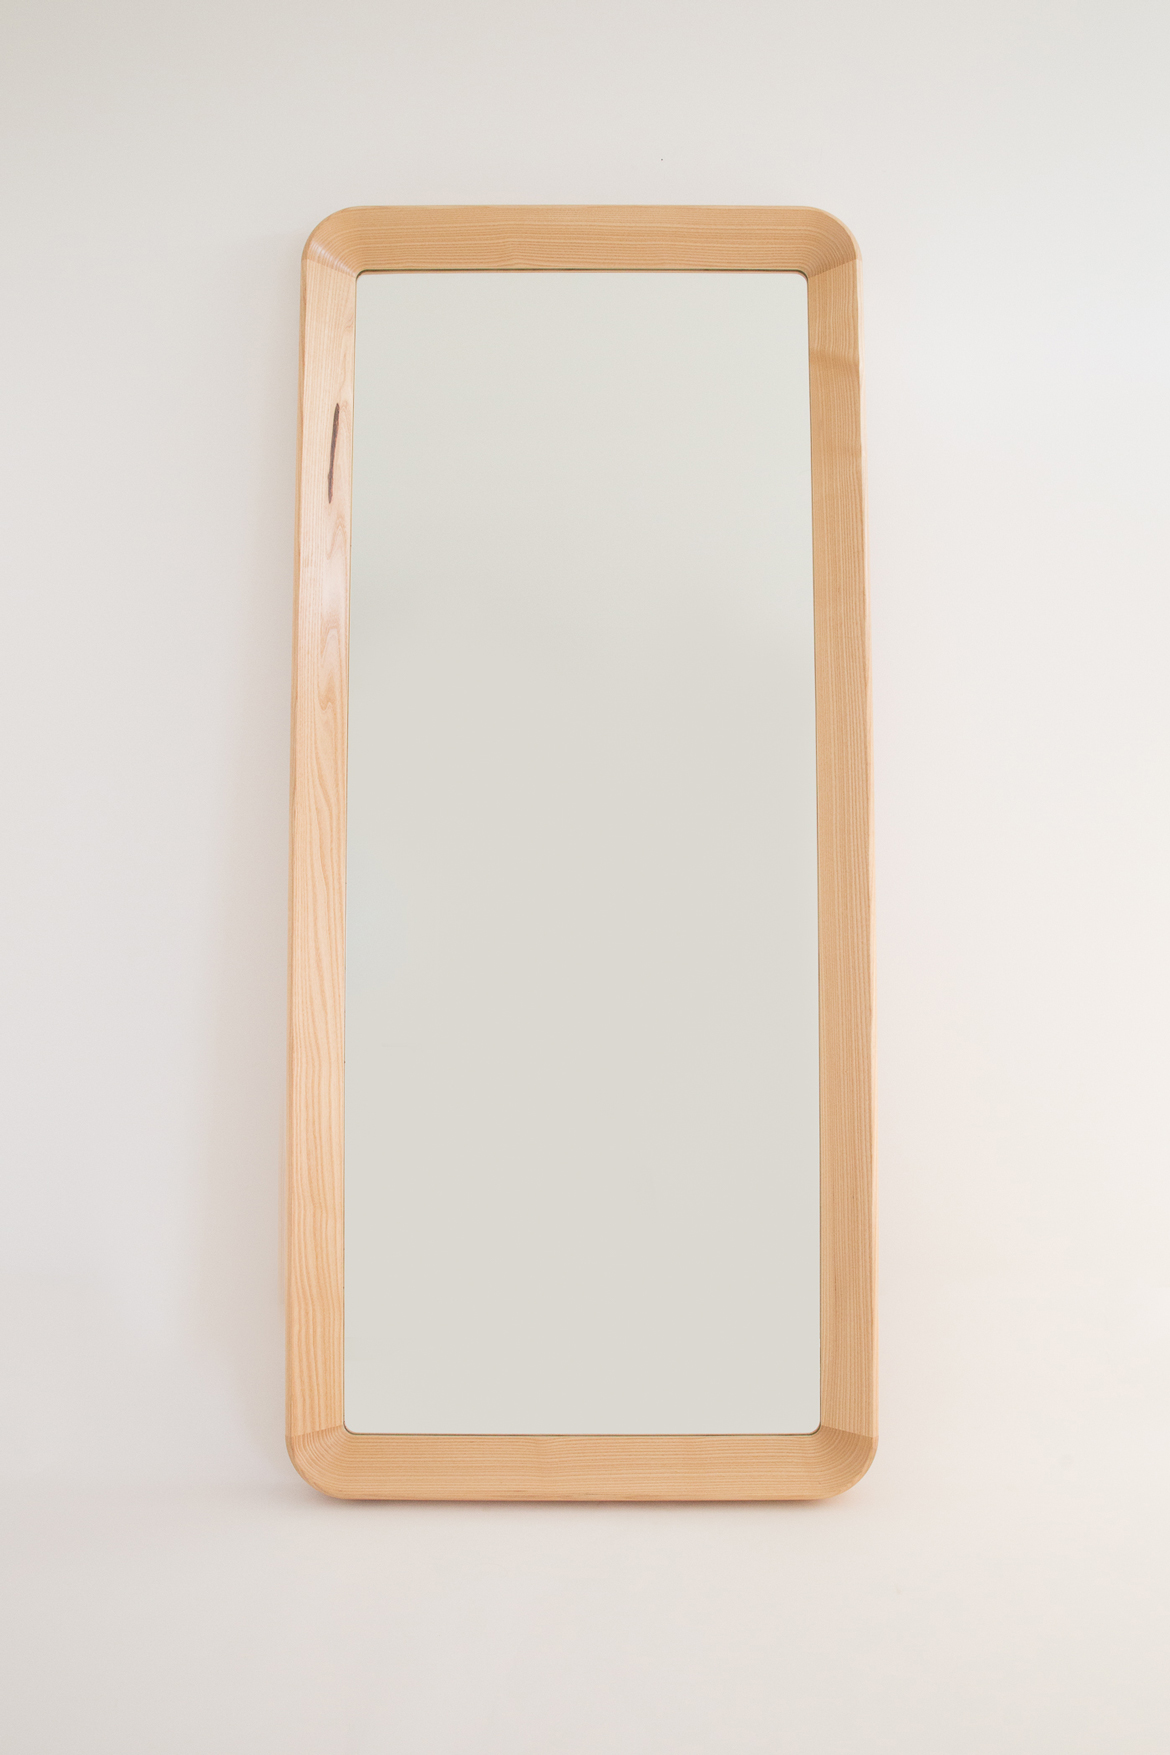 domestically produced furniture fsc certified full length mirror simple simple collection simple mirror solid wood solid wooden frame mirror - Wood Frame Mirror